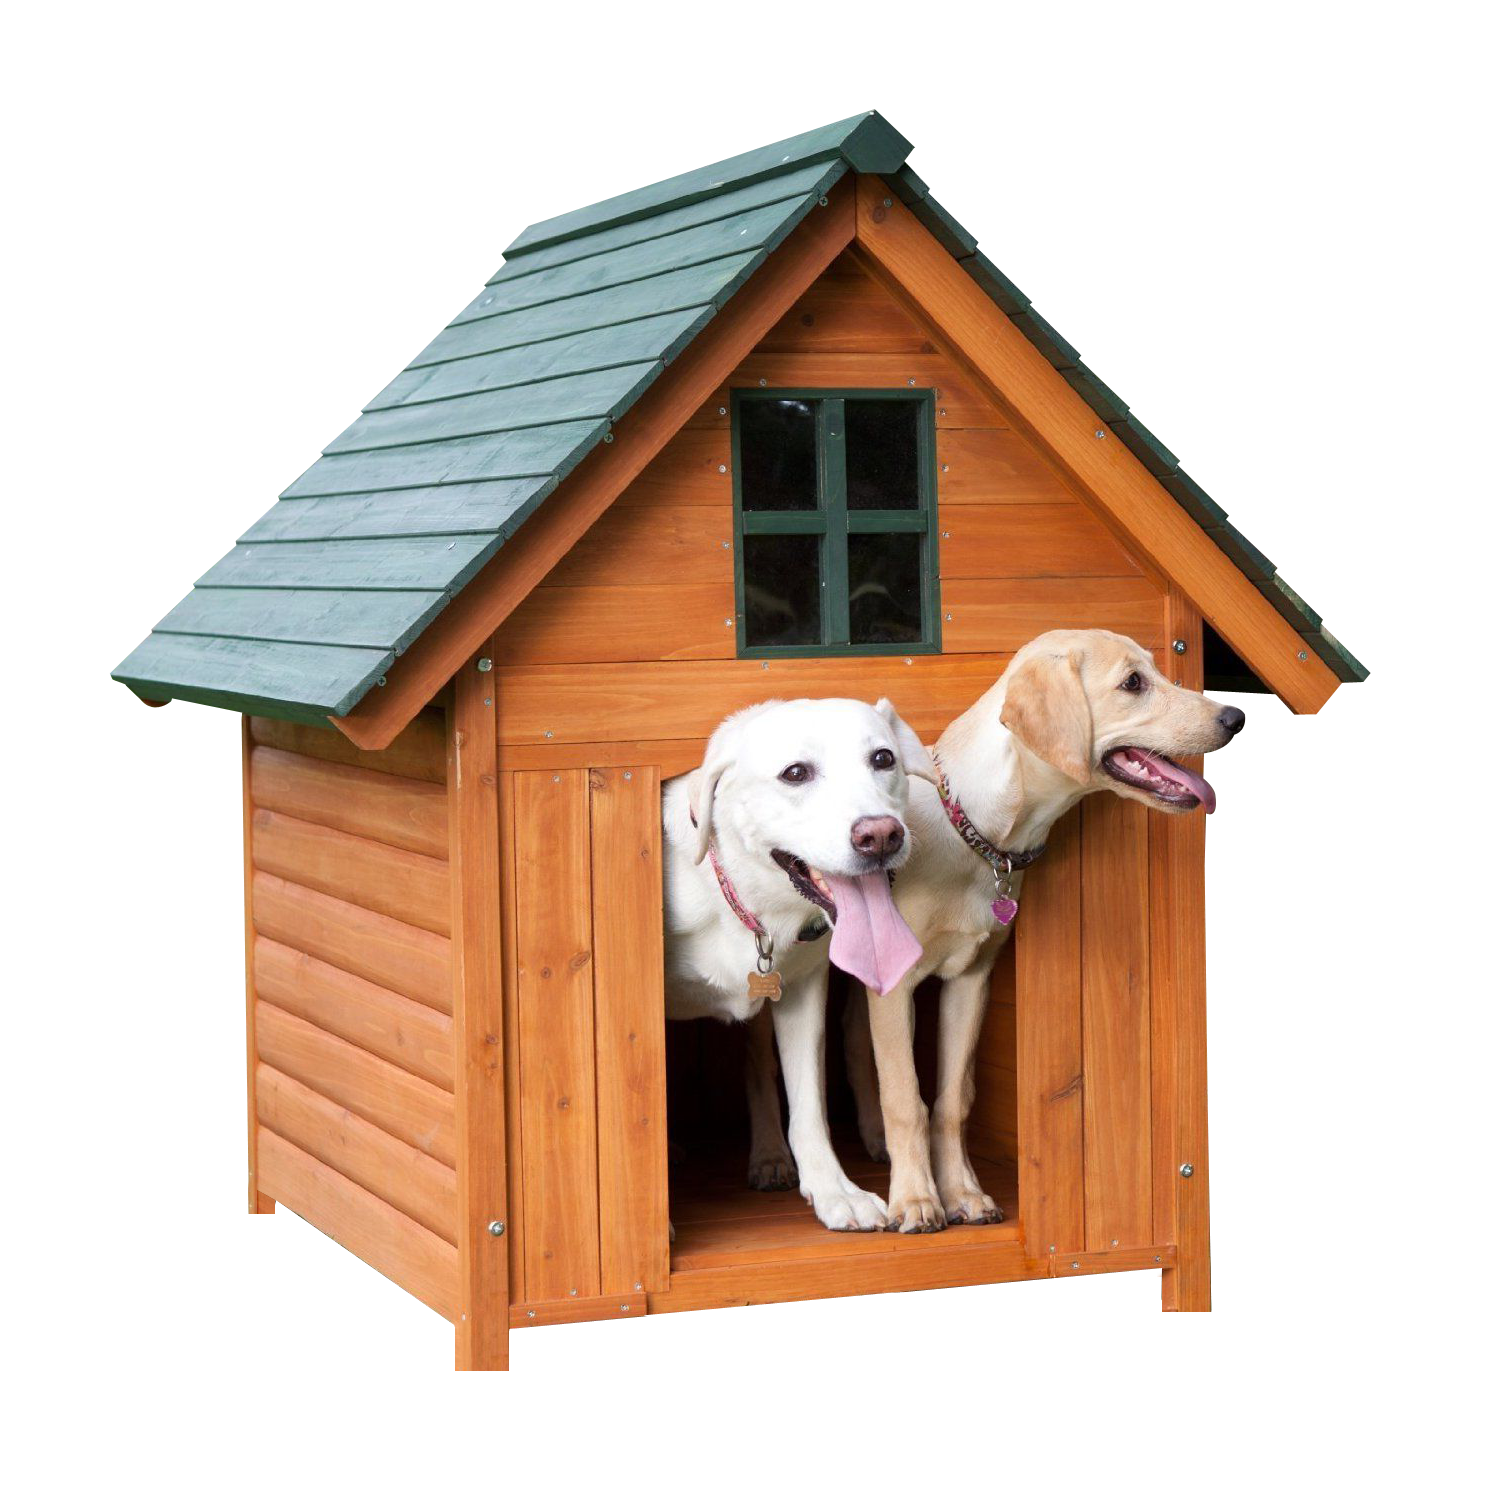 Dog house png image. Doghouse clipart transparent